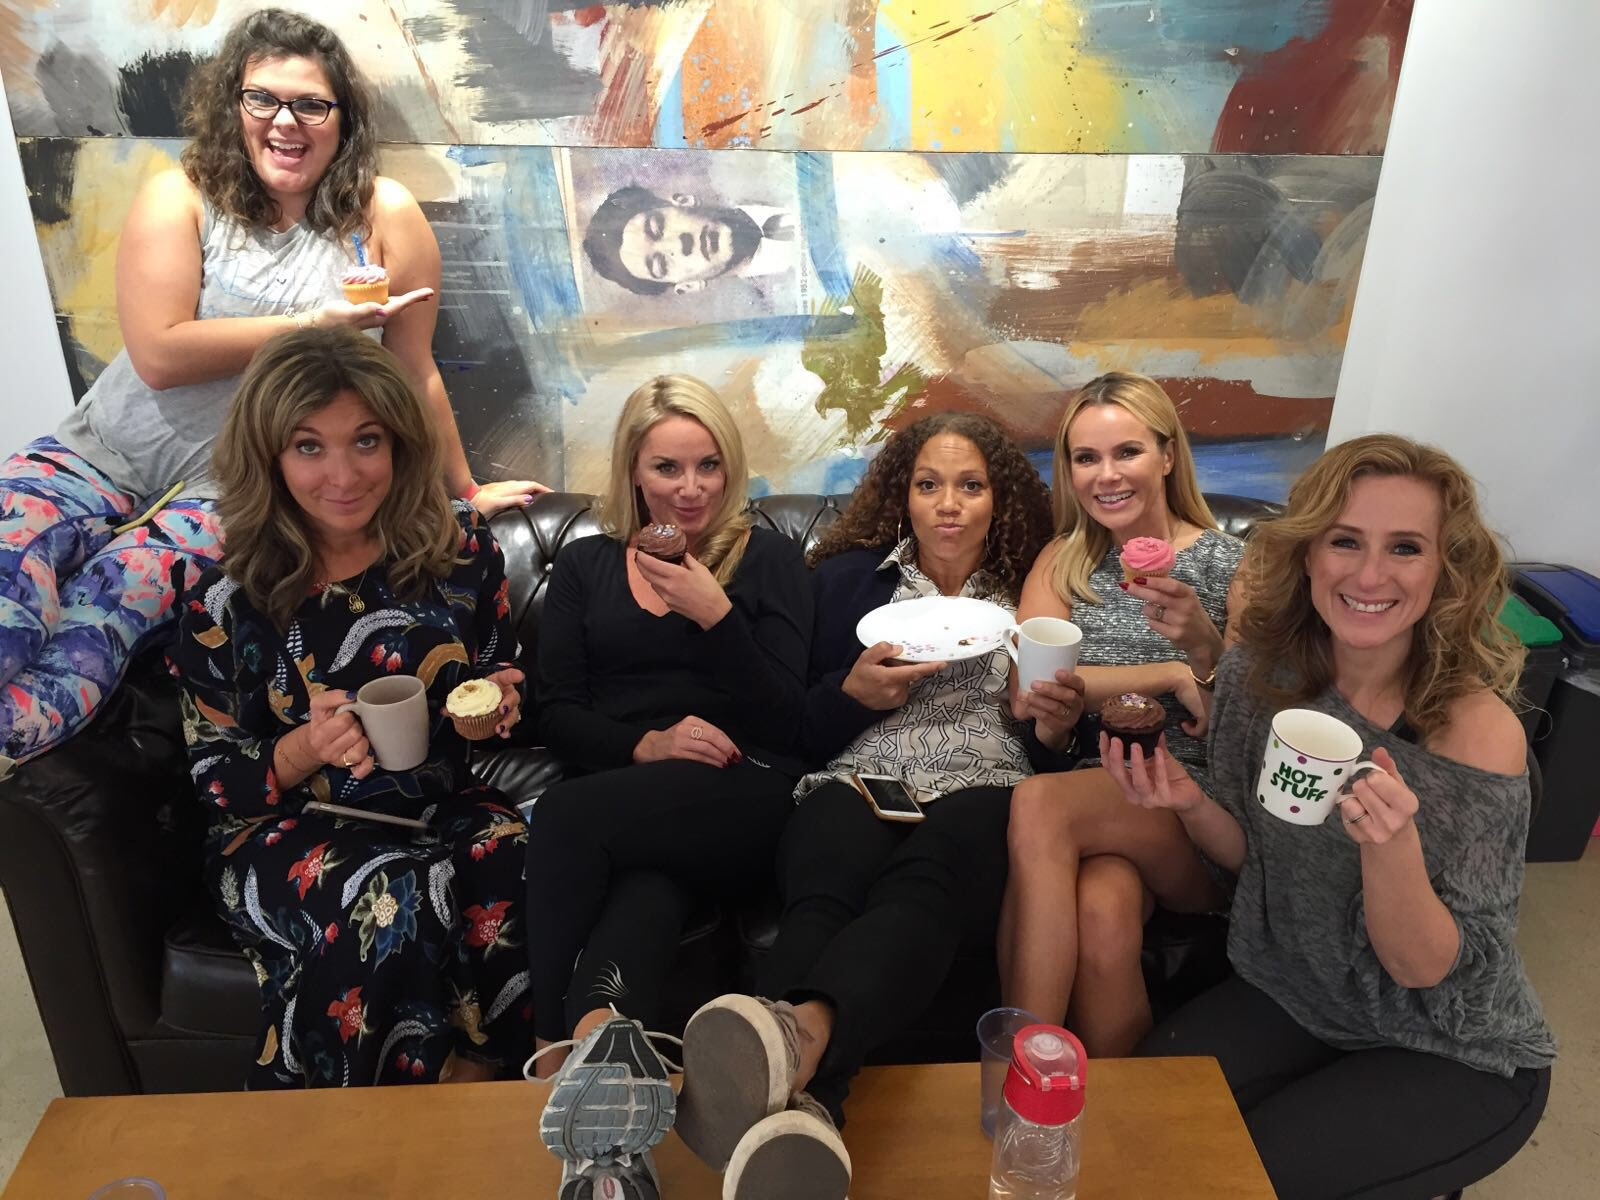 Join us in the world's biggest coffee morning and #raiseamug for @macmillancancer let's do this together. https://t.co/au8WFzJ6x9